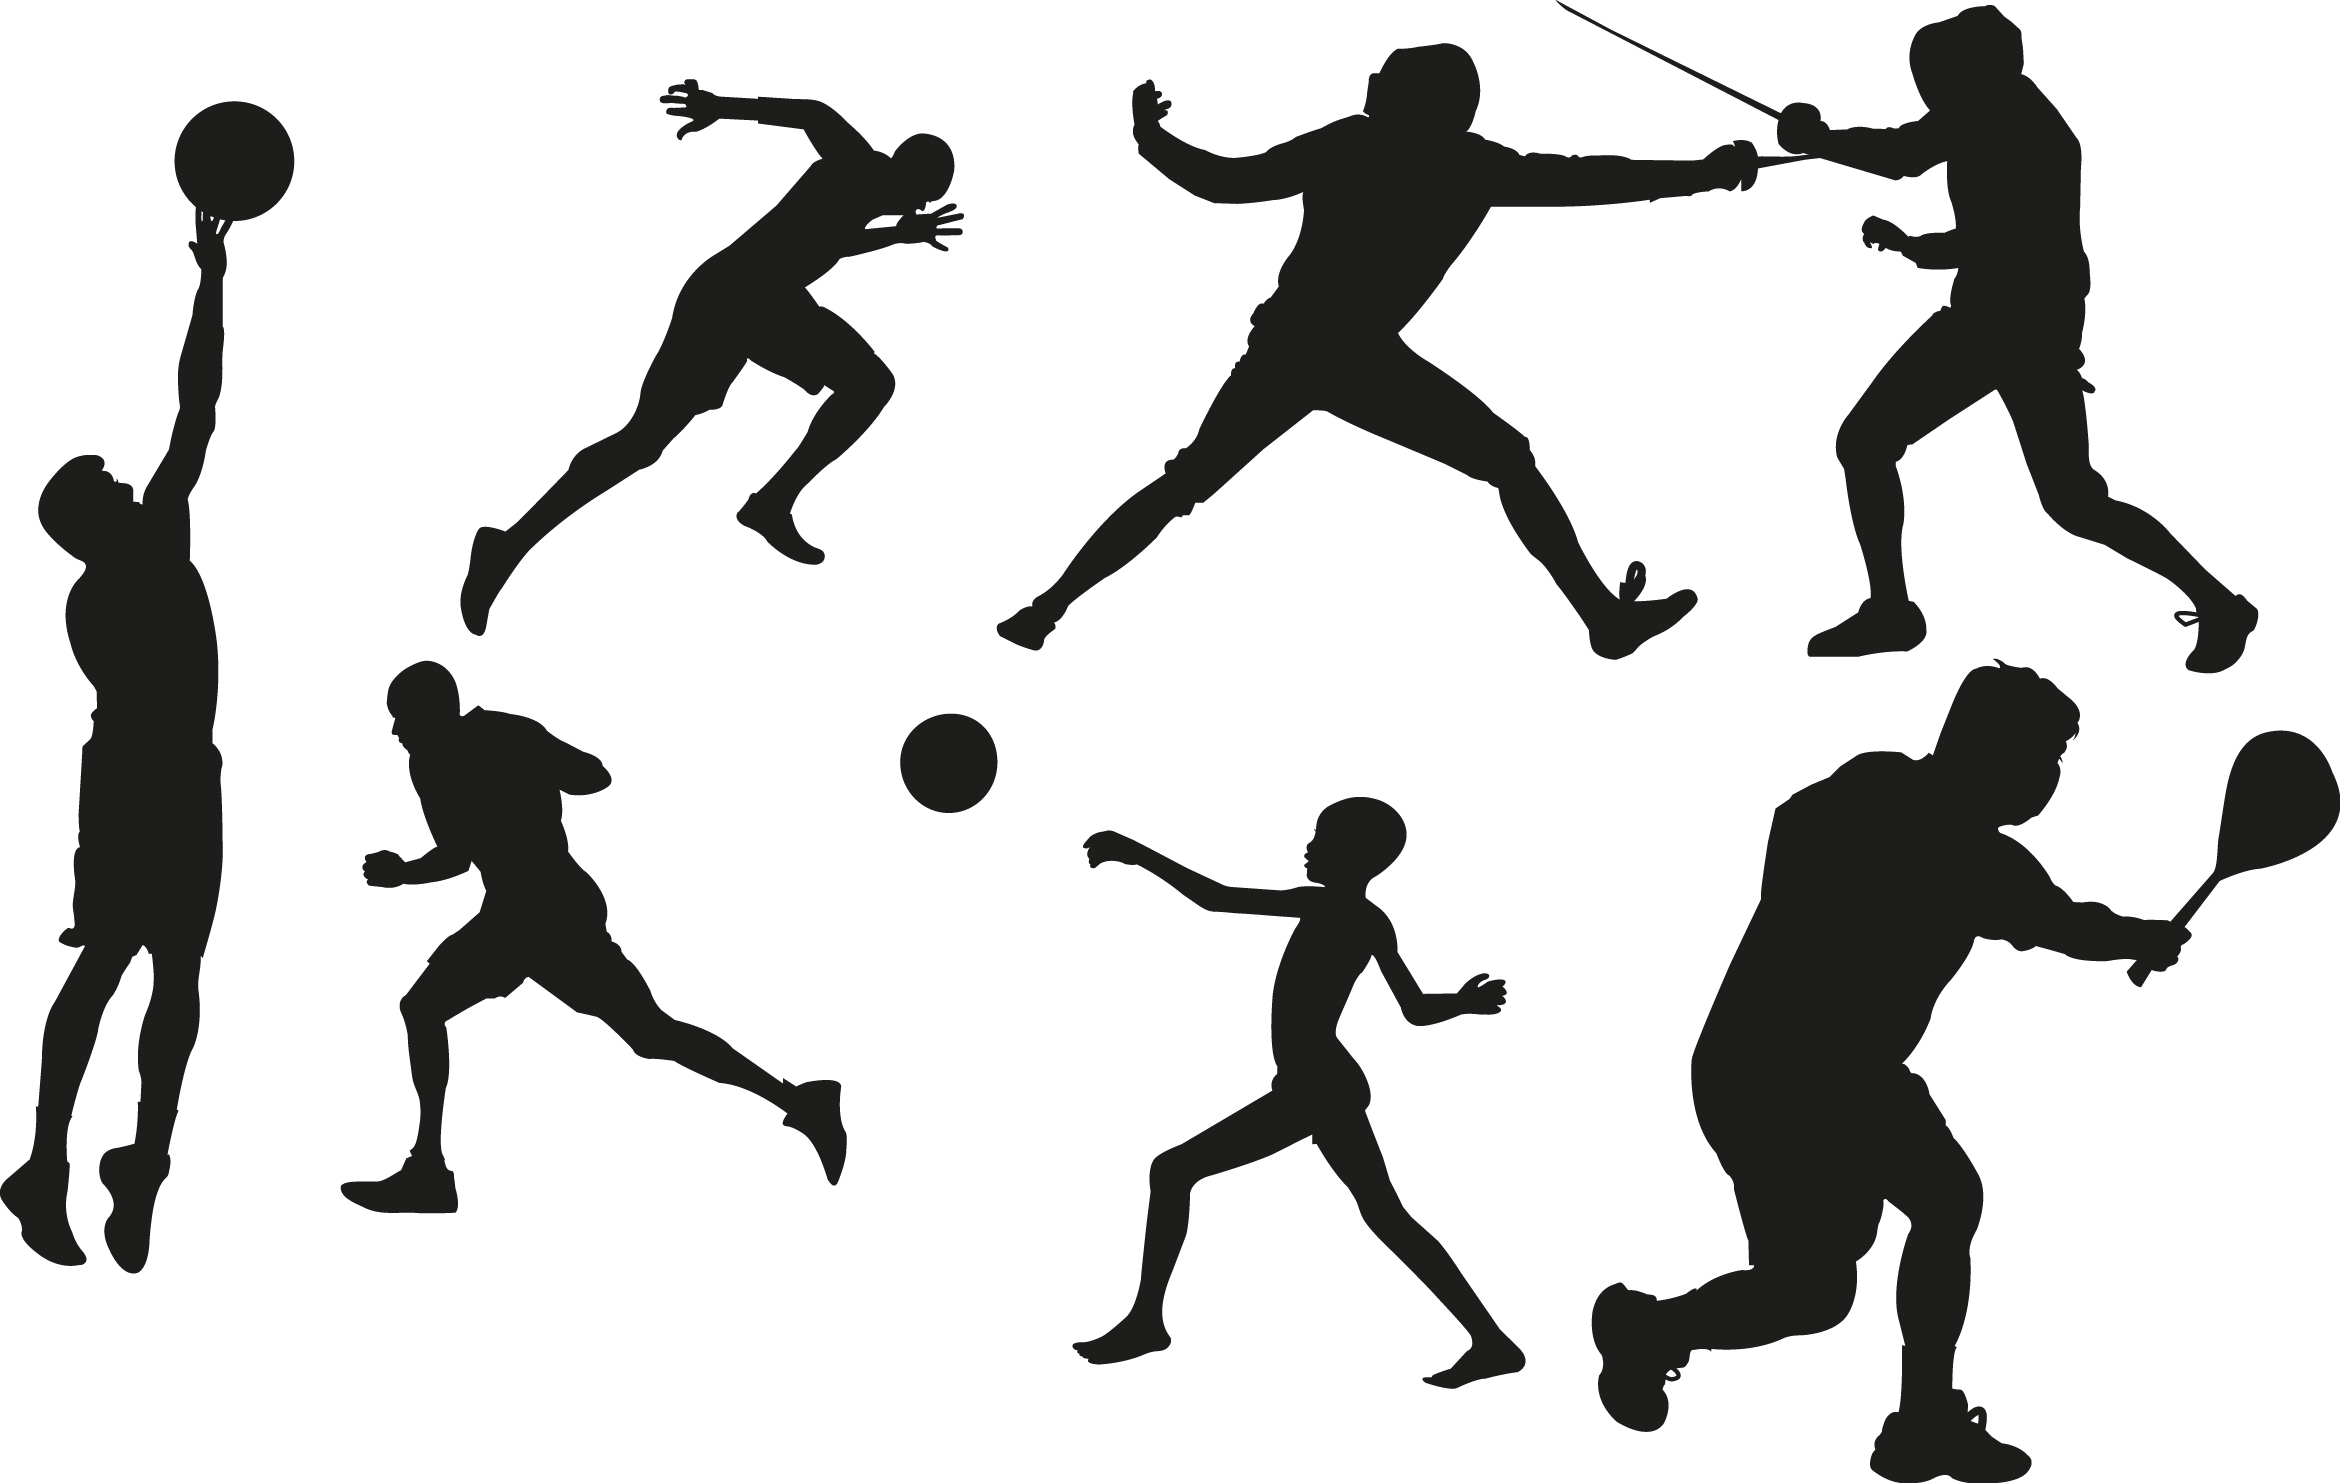 Can't find the perfect clip-art?: www.clipartbest.com/sport